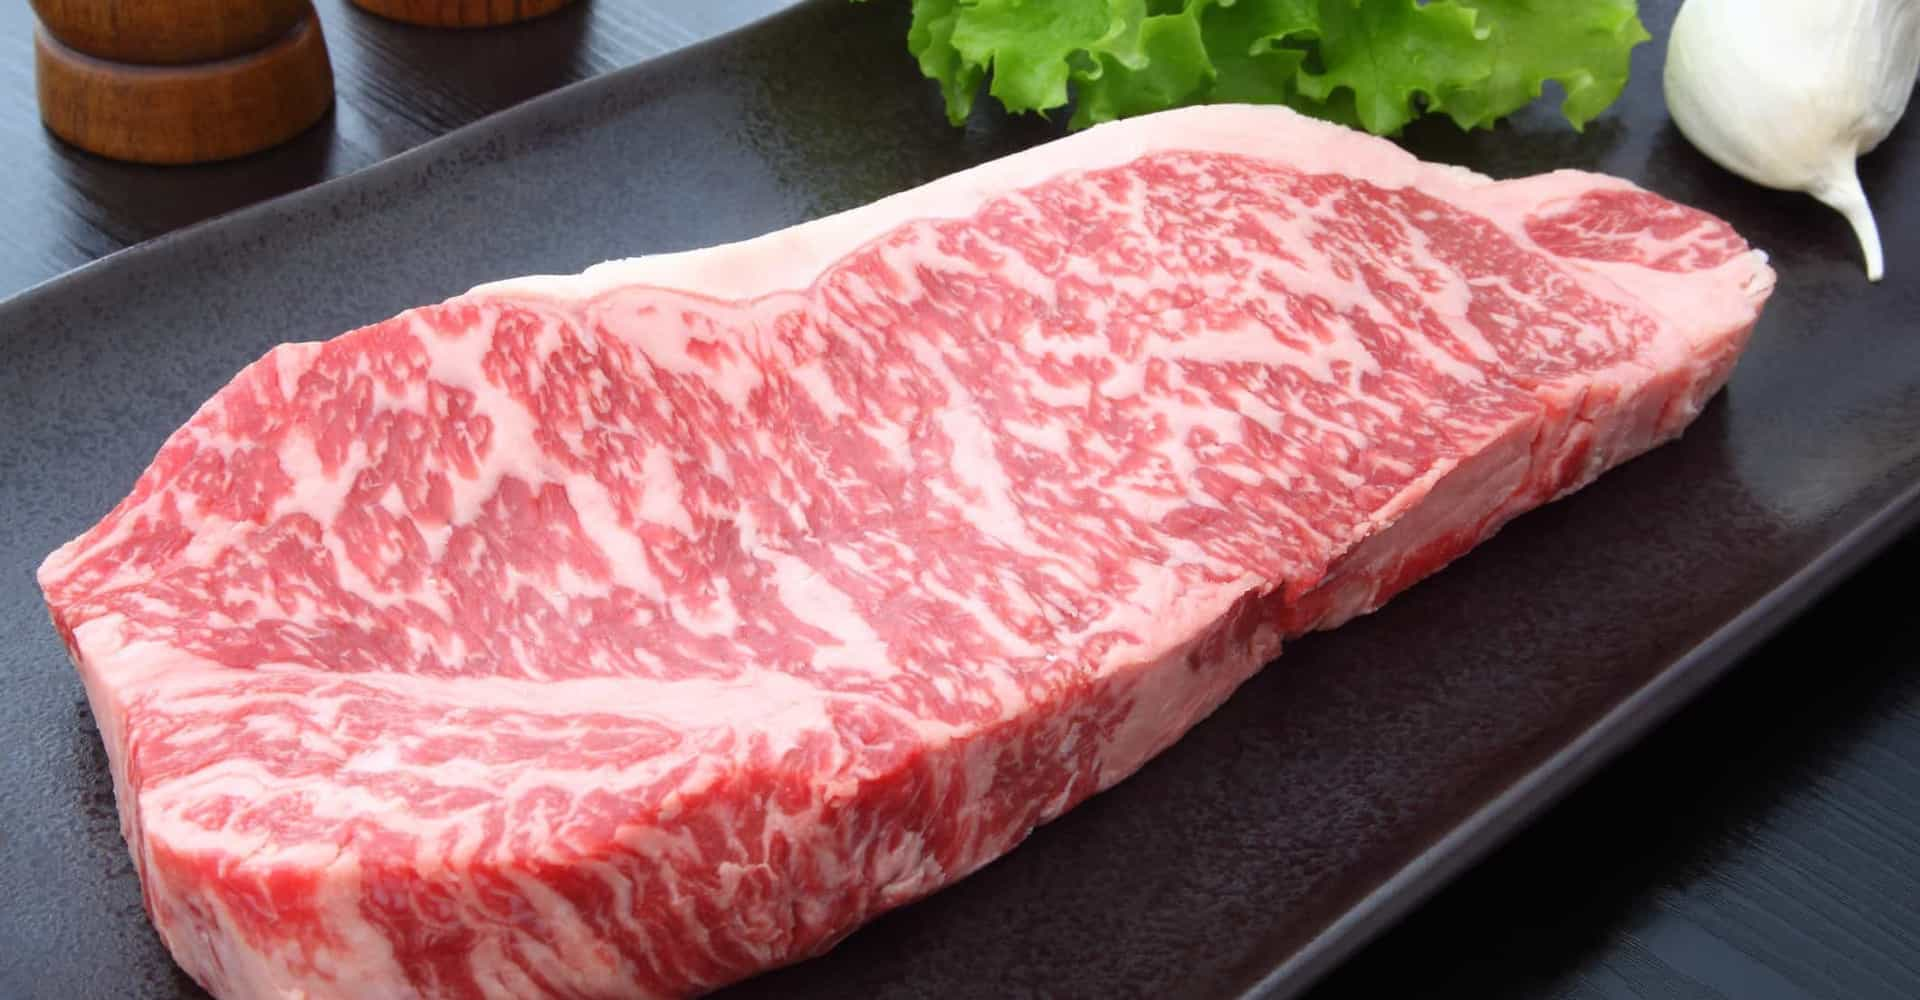 What makes Wagyu steak so expensive?